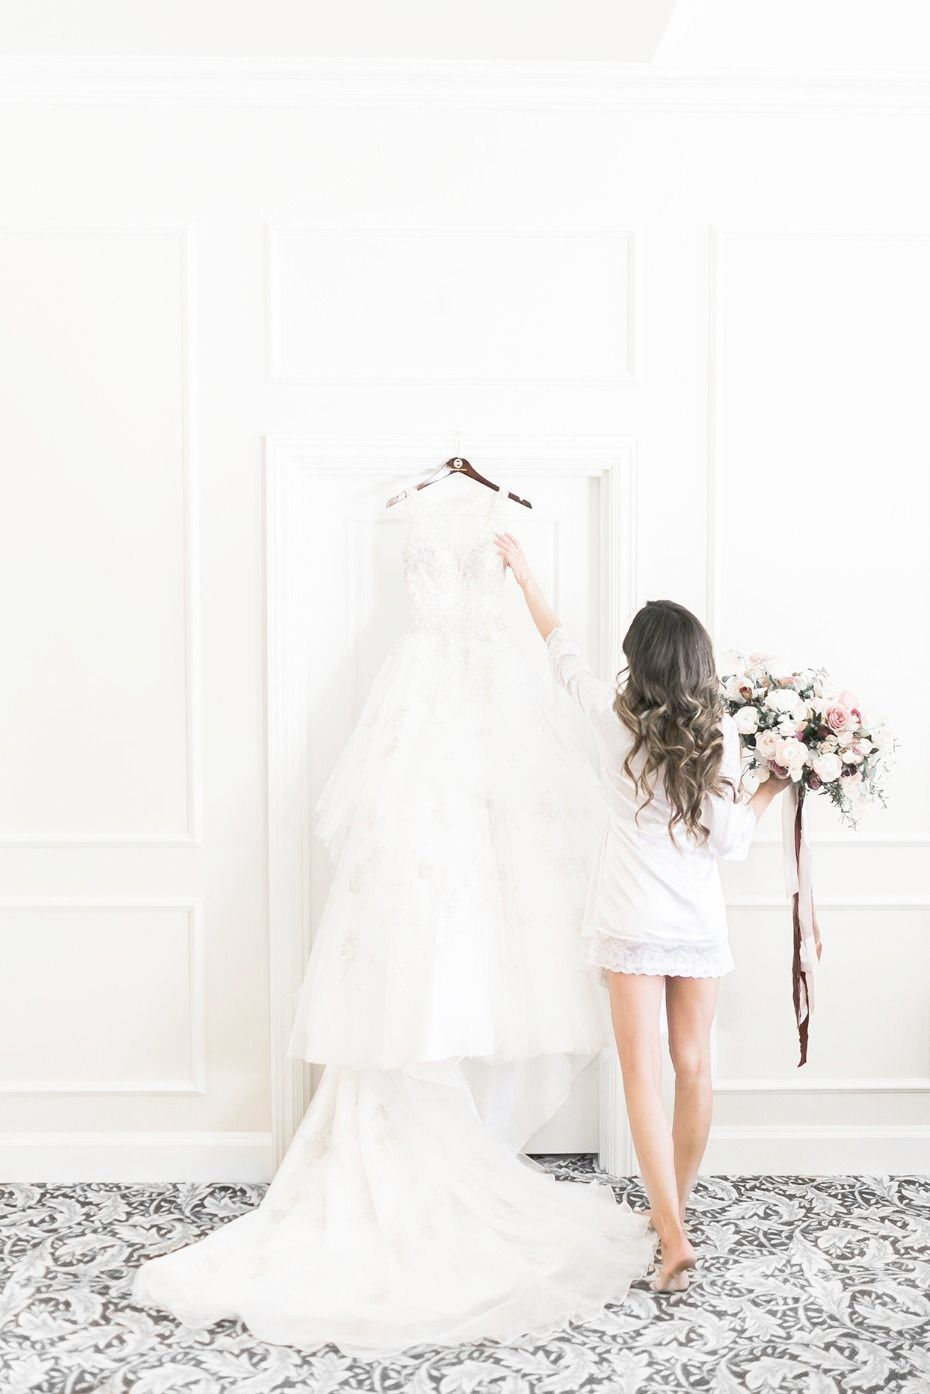 Halo By Chic Nostalgia Will Be Coming Soon To Sincerely The Bride Located In Vancouver Wash Wedding Dresses Romantic Wedding Dresses Wedding Gown Inspiration [ 1600 x 1066 Pixel ]